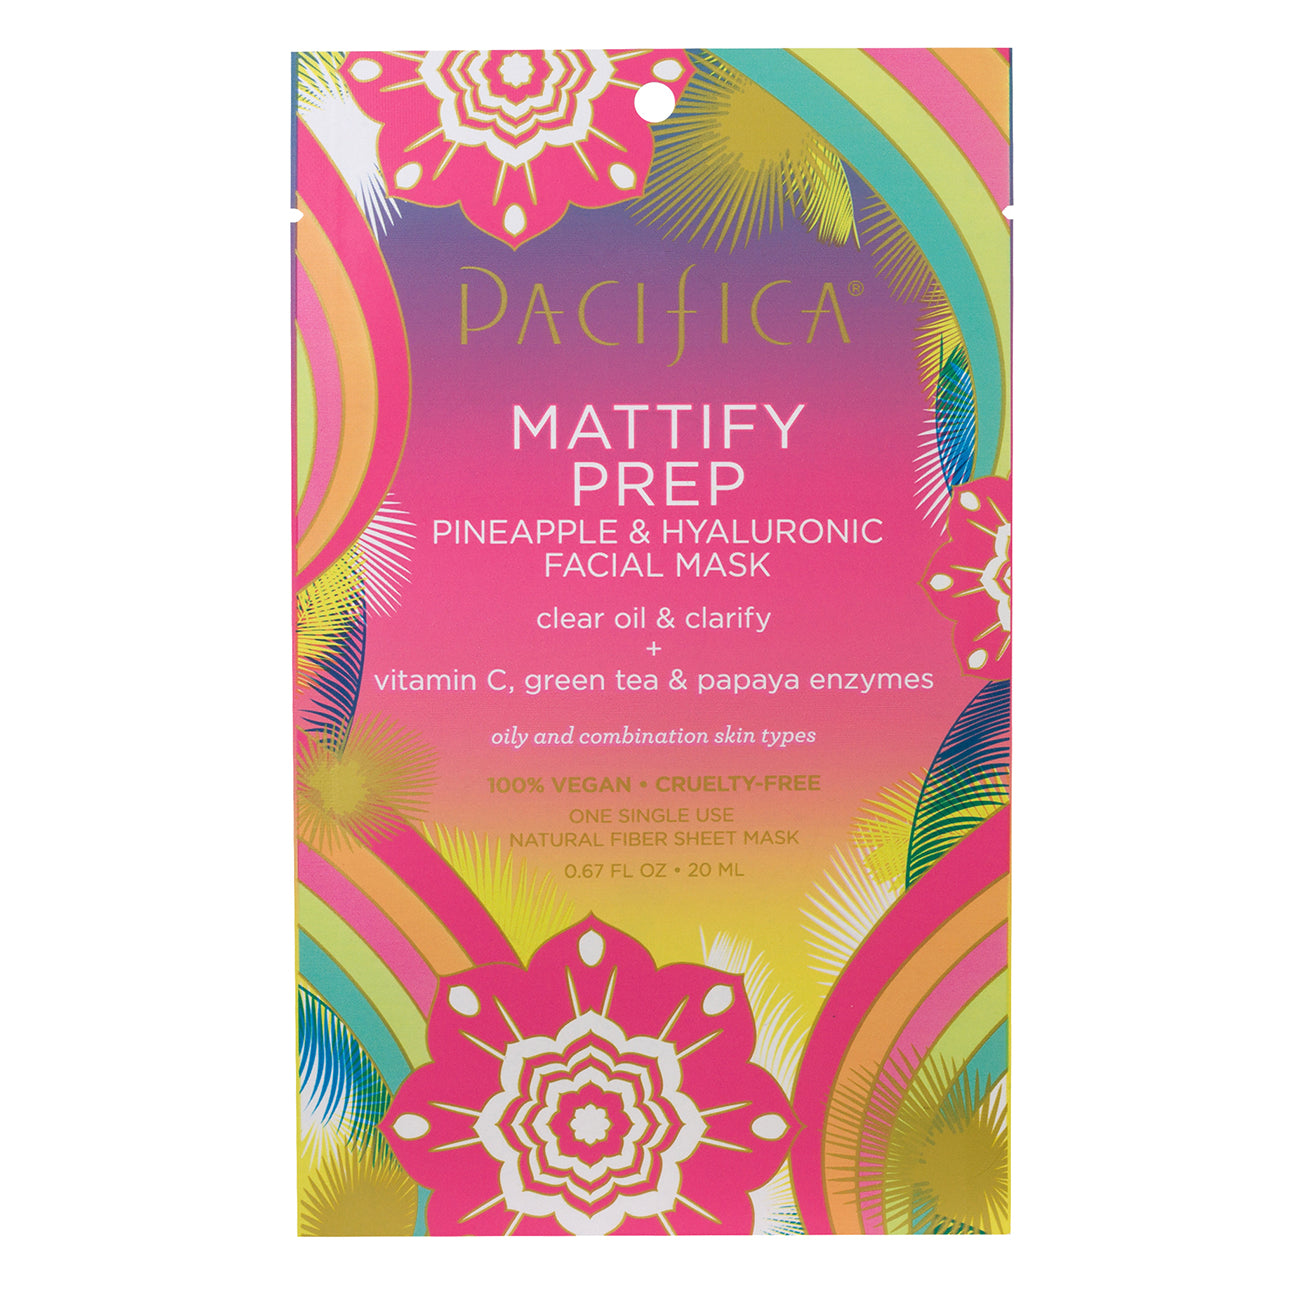 Mattify Prep Pineapple & Hyaluronic Facial Mask - Skin Care - Pacifica Beauty